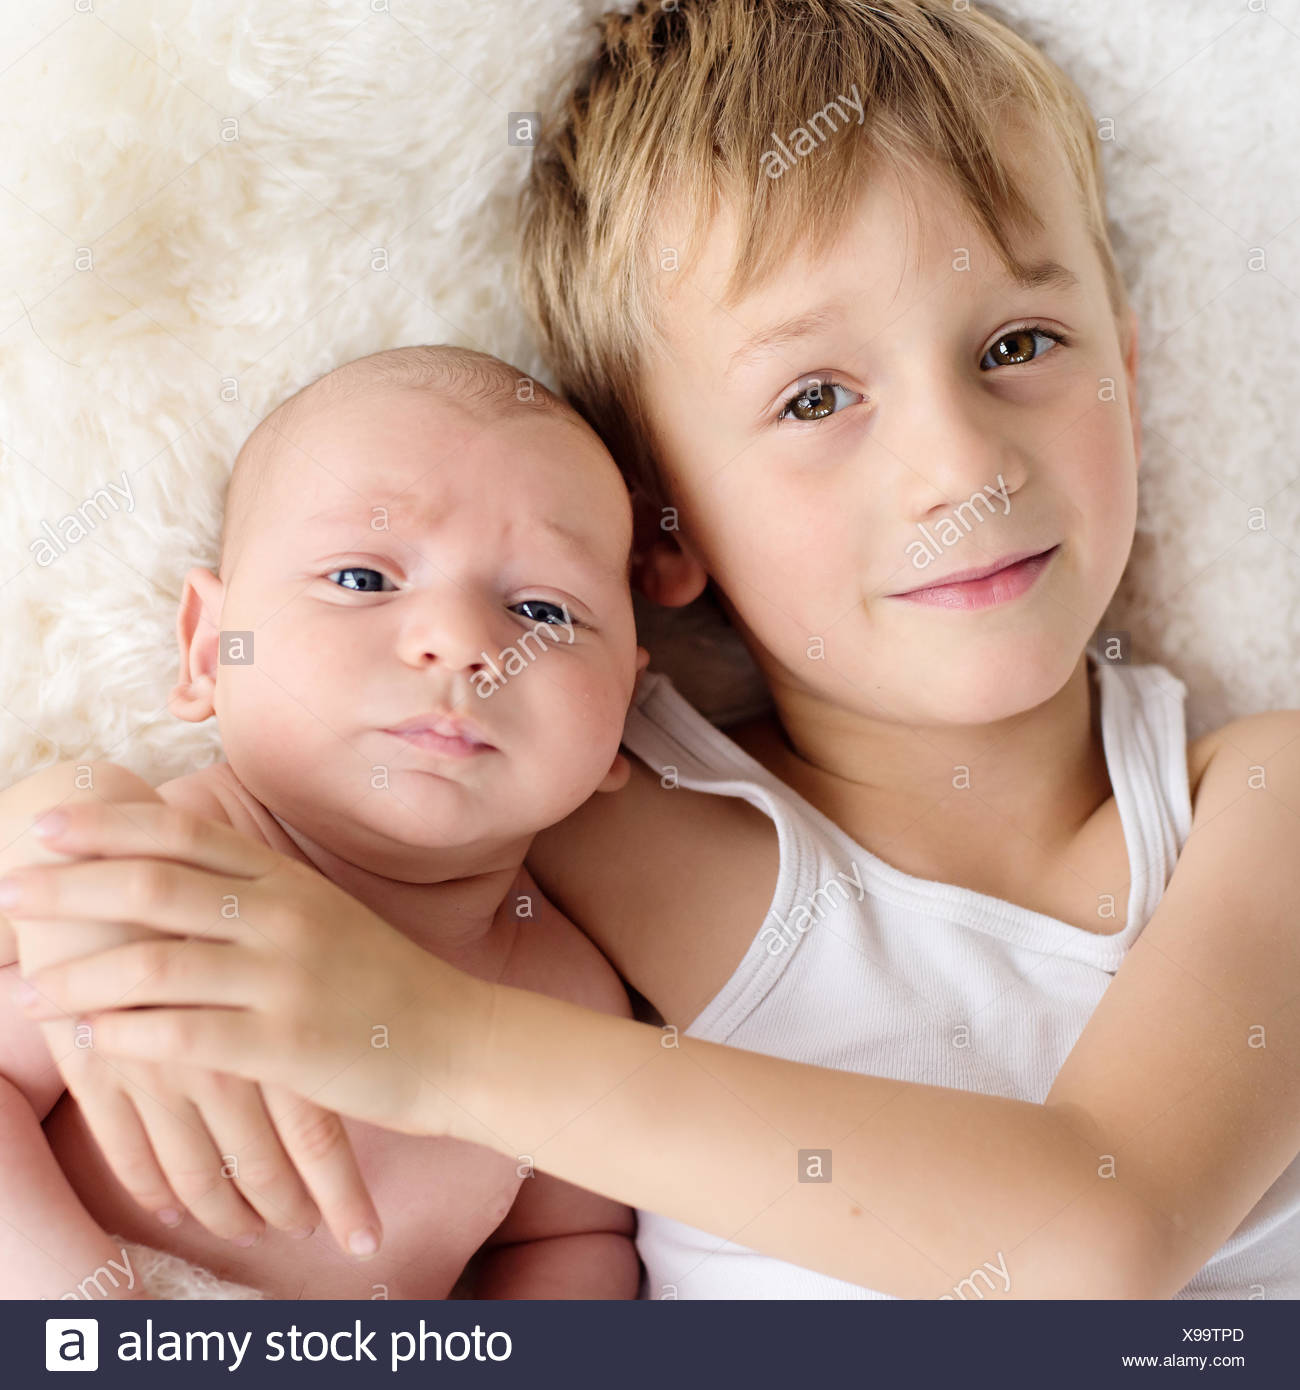 Boy cuddling his baby brother - Stock Image